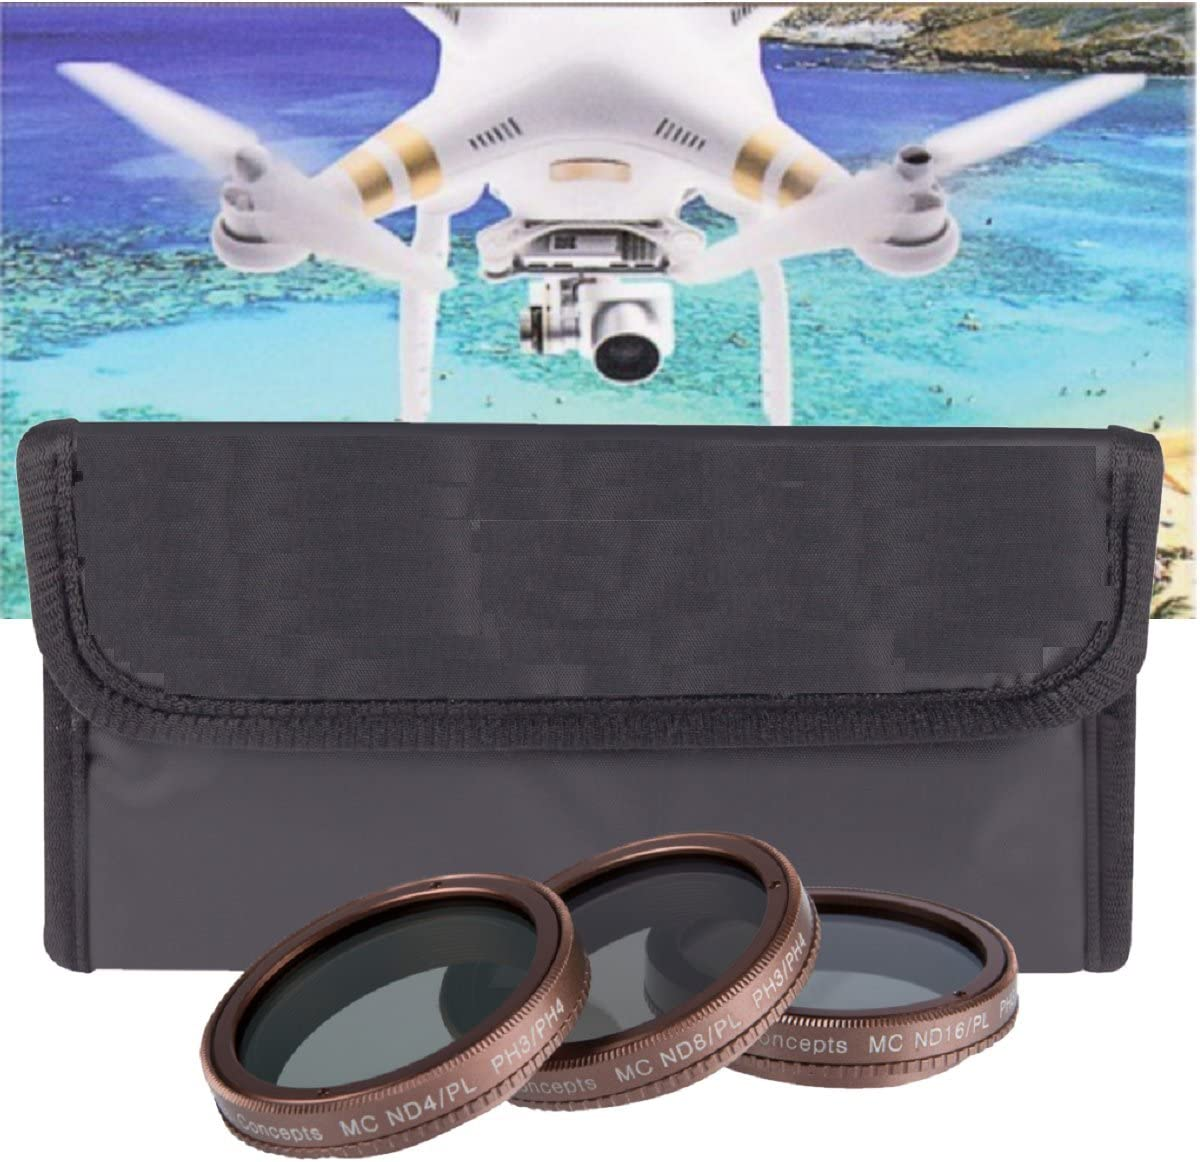 3 Piece Polarized Filter Kit - Includes ND4-ND8-ND16 Gold Edition Filters for DJI Phantom 3 4K, DJI Phantom 3 Advanced, DJI Phantom 3 Pro, DJI Phantom 4 Quad-copters